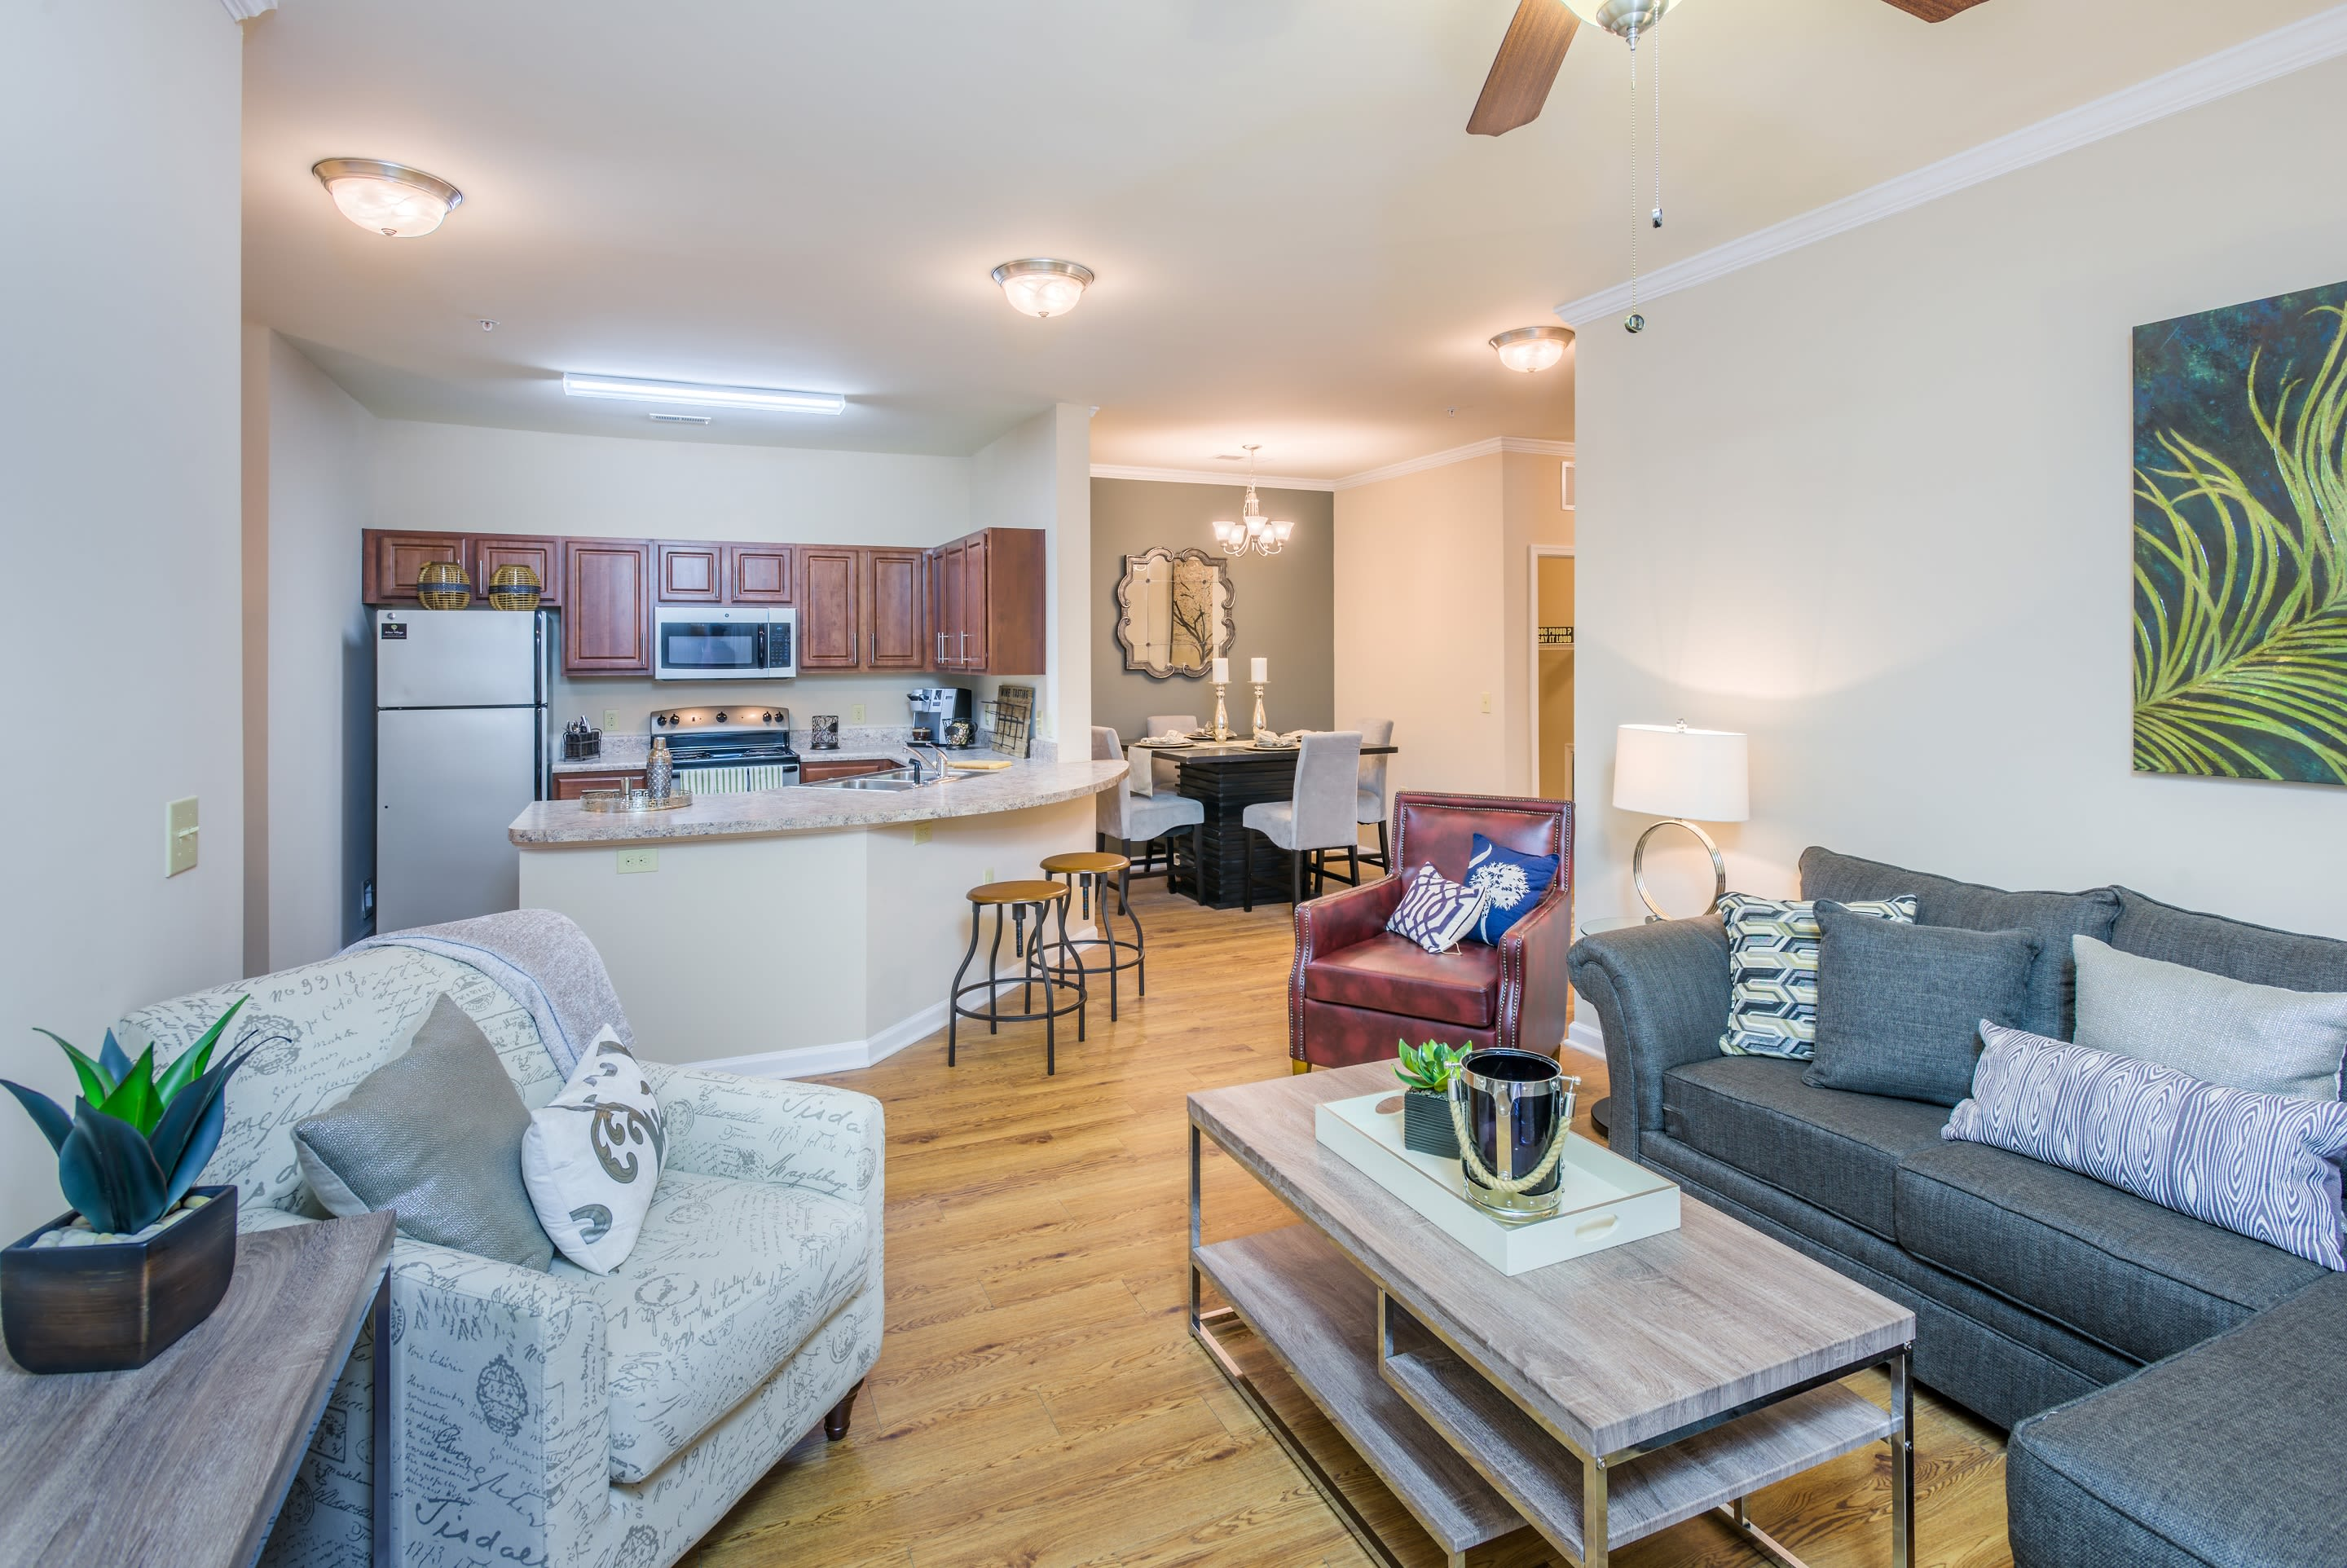 Arbor Village luxury apartments in Summerville, South Carolina showcase a kitchen